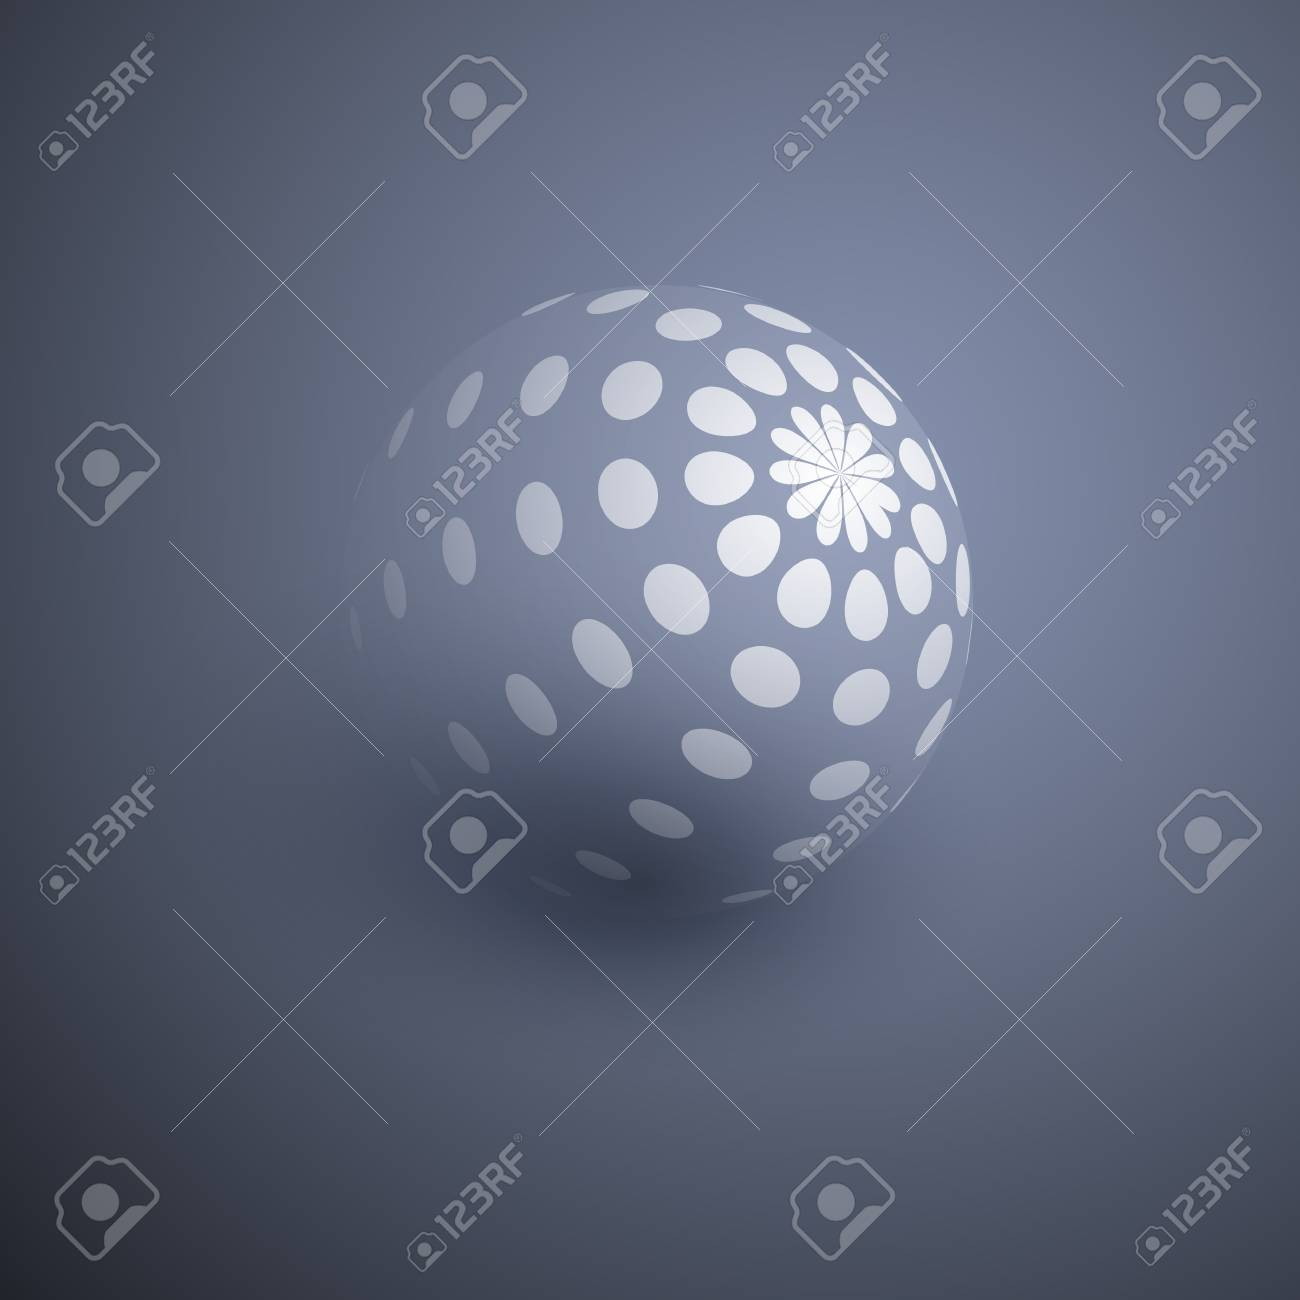 Globe Design with Dotted Surface - 27874176